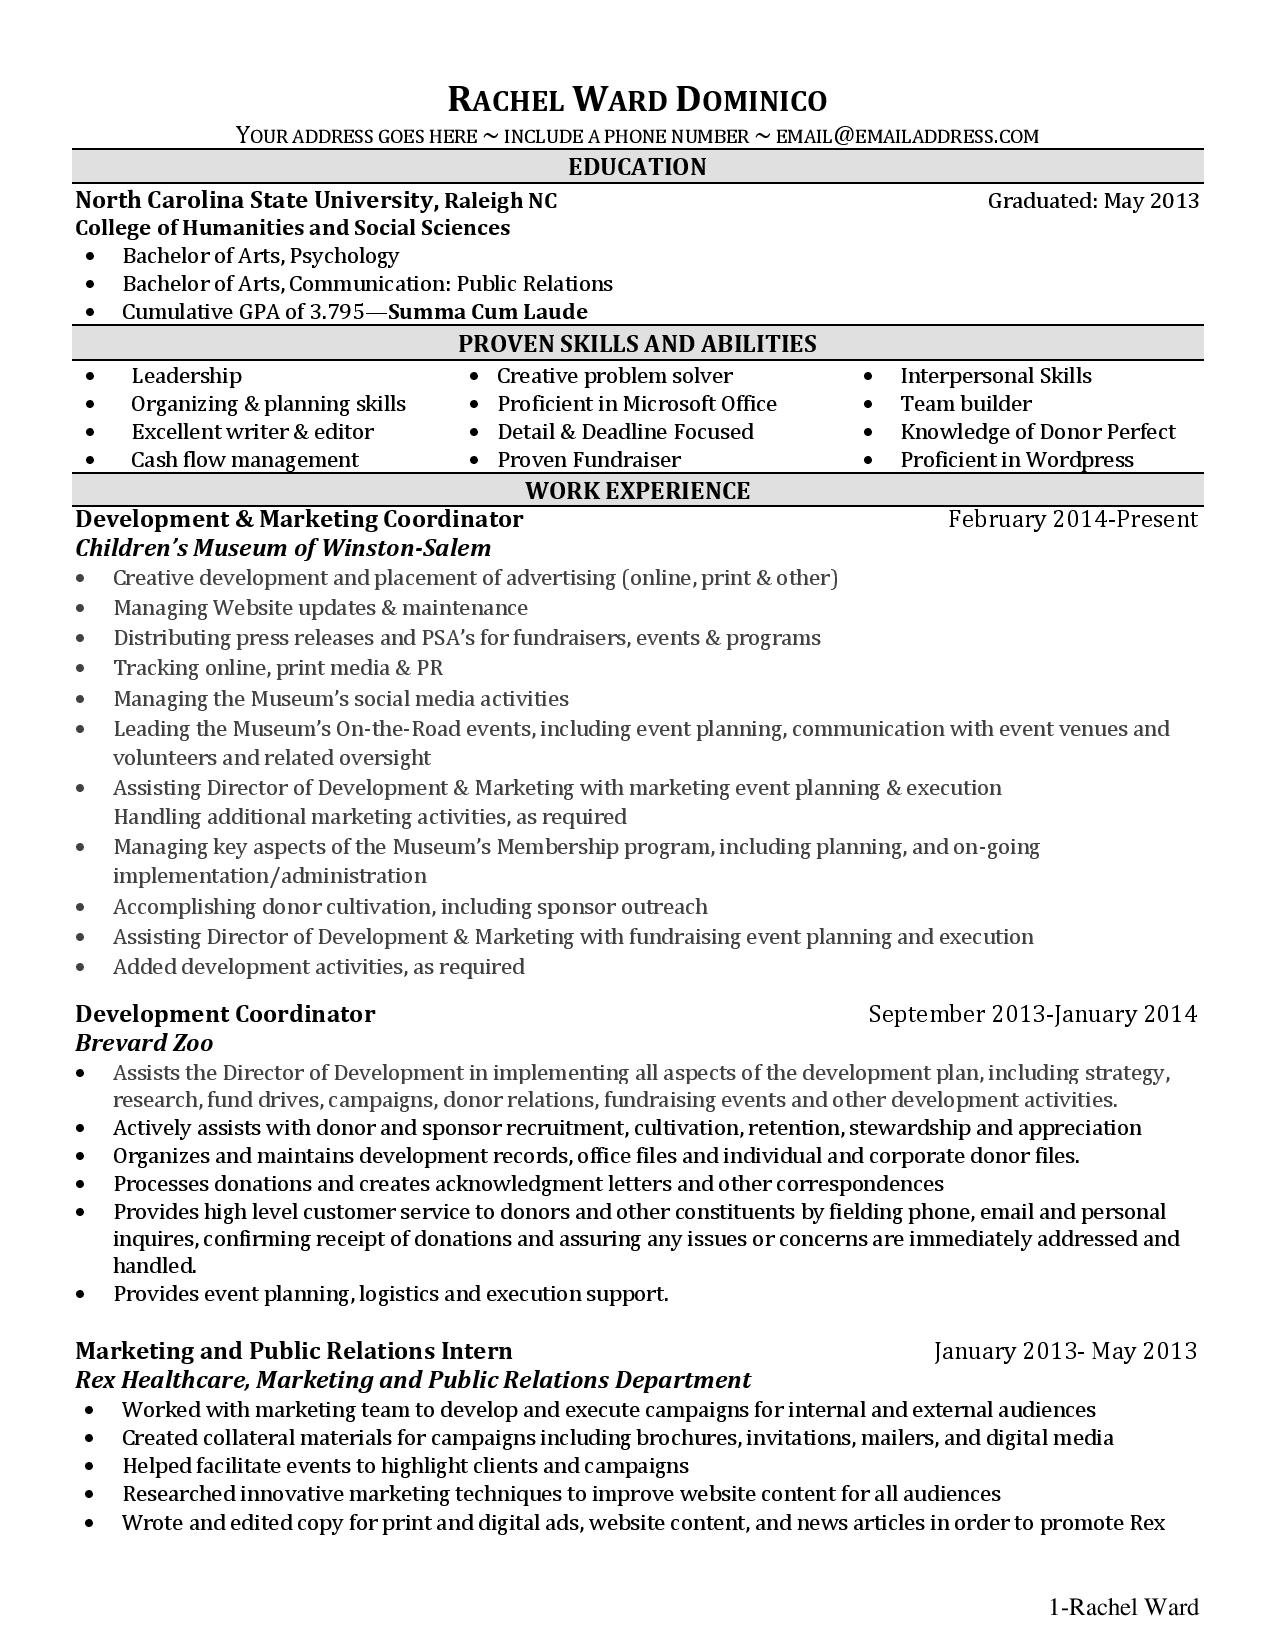 image gallery listing education on resume